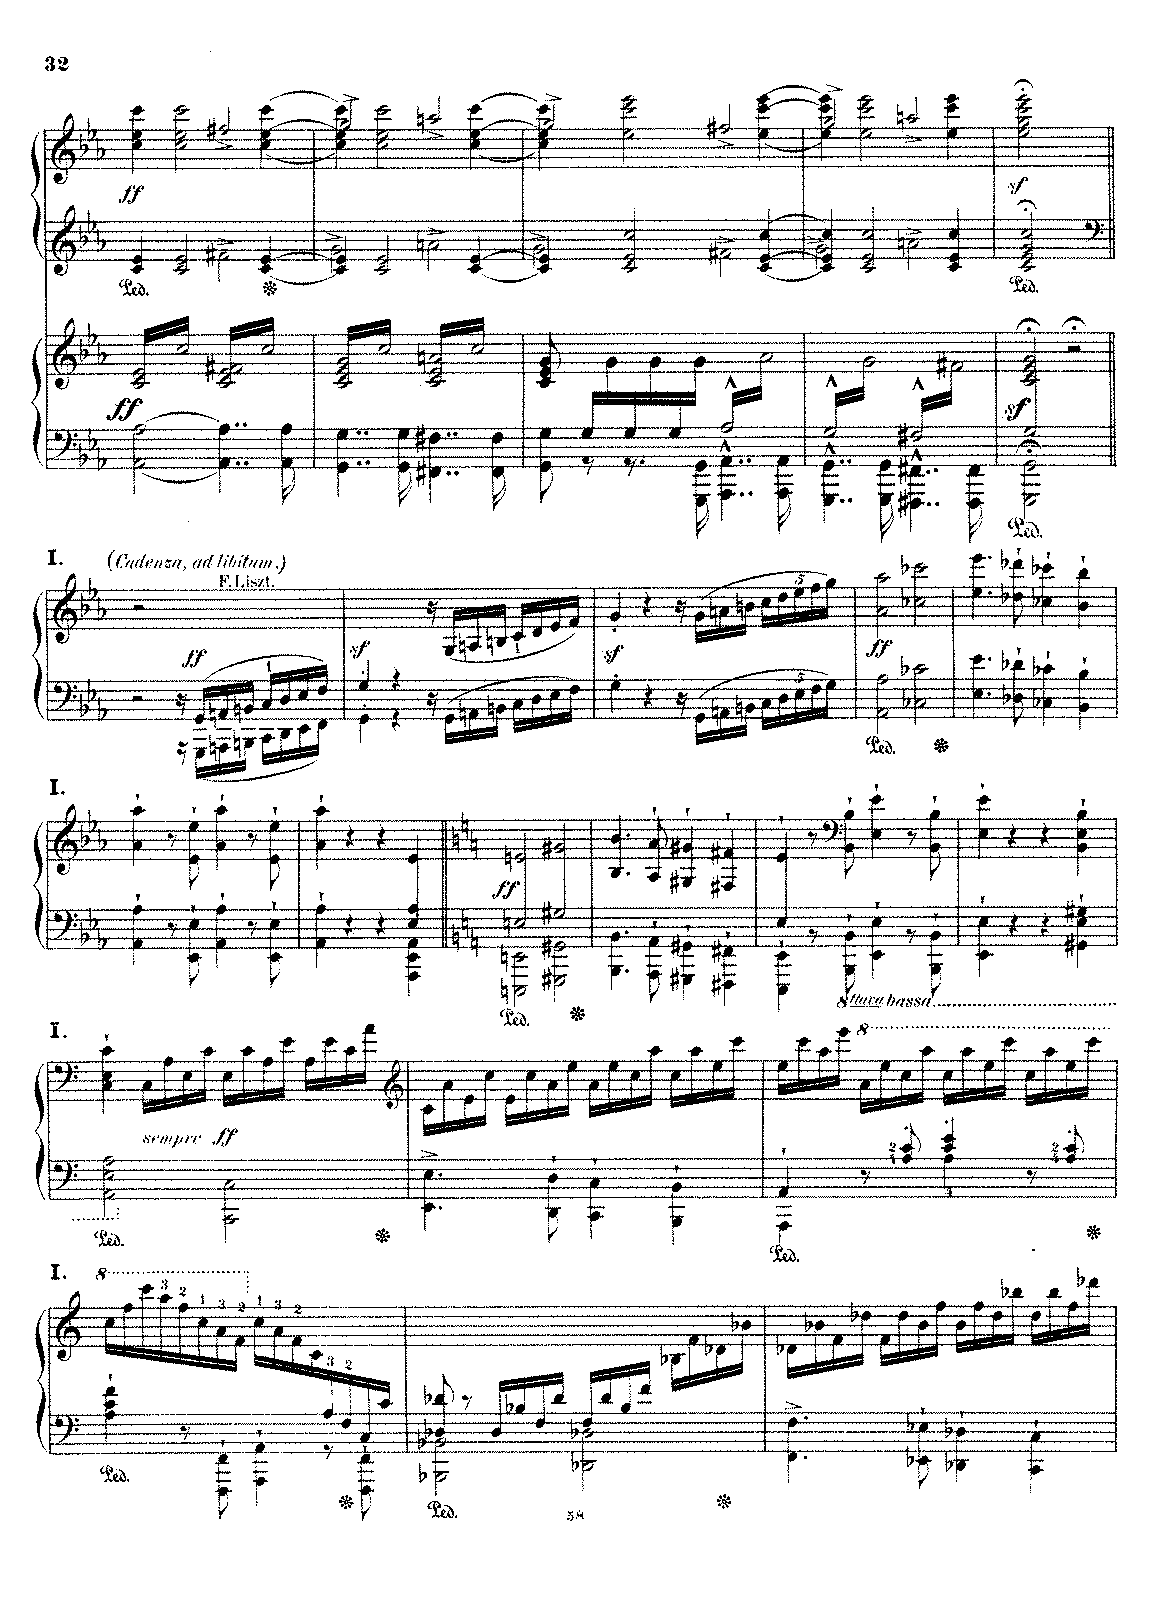 Liszt - S389a Cadenza to 1st mov of Piano Concerto No3.pdf